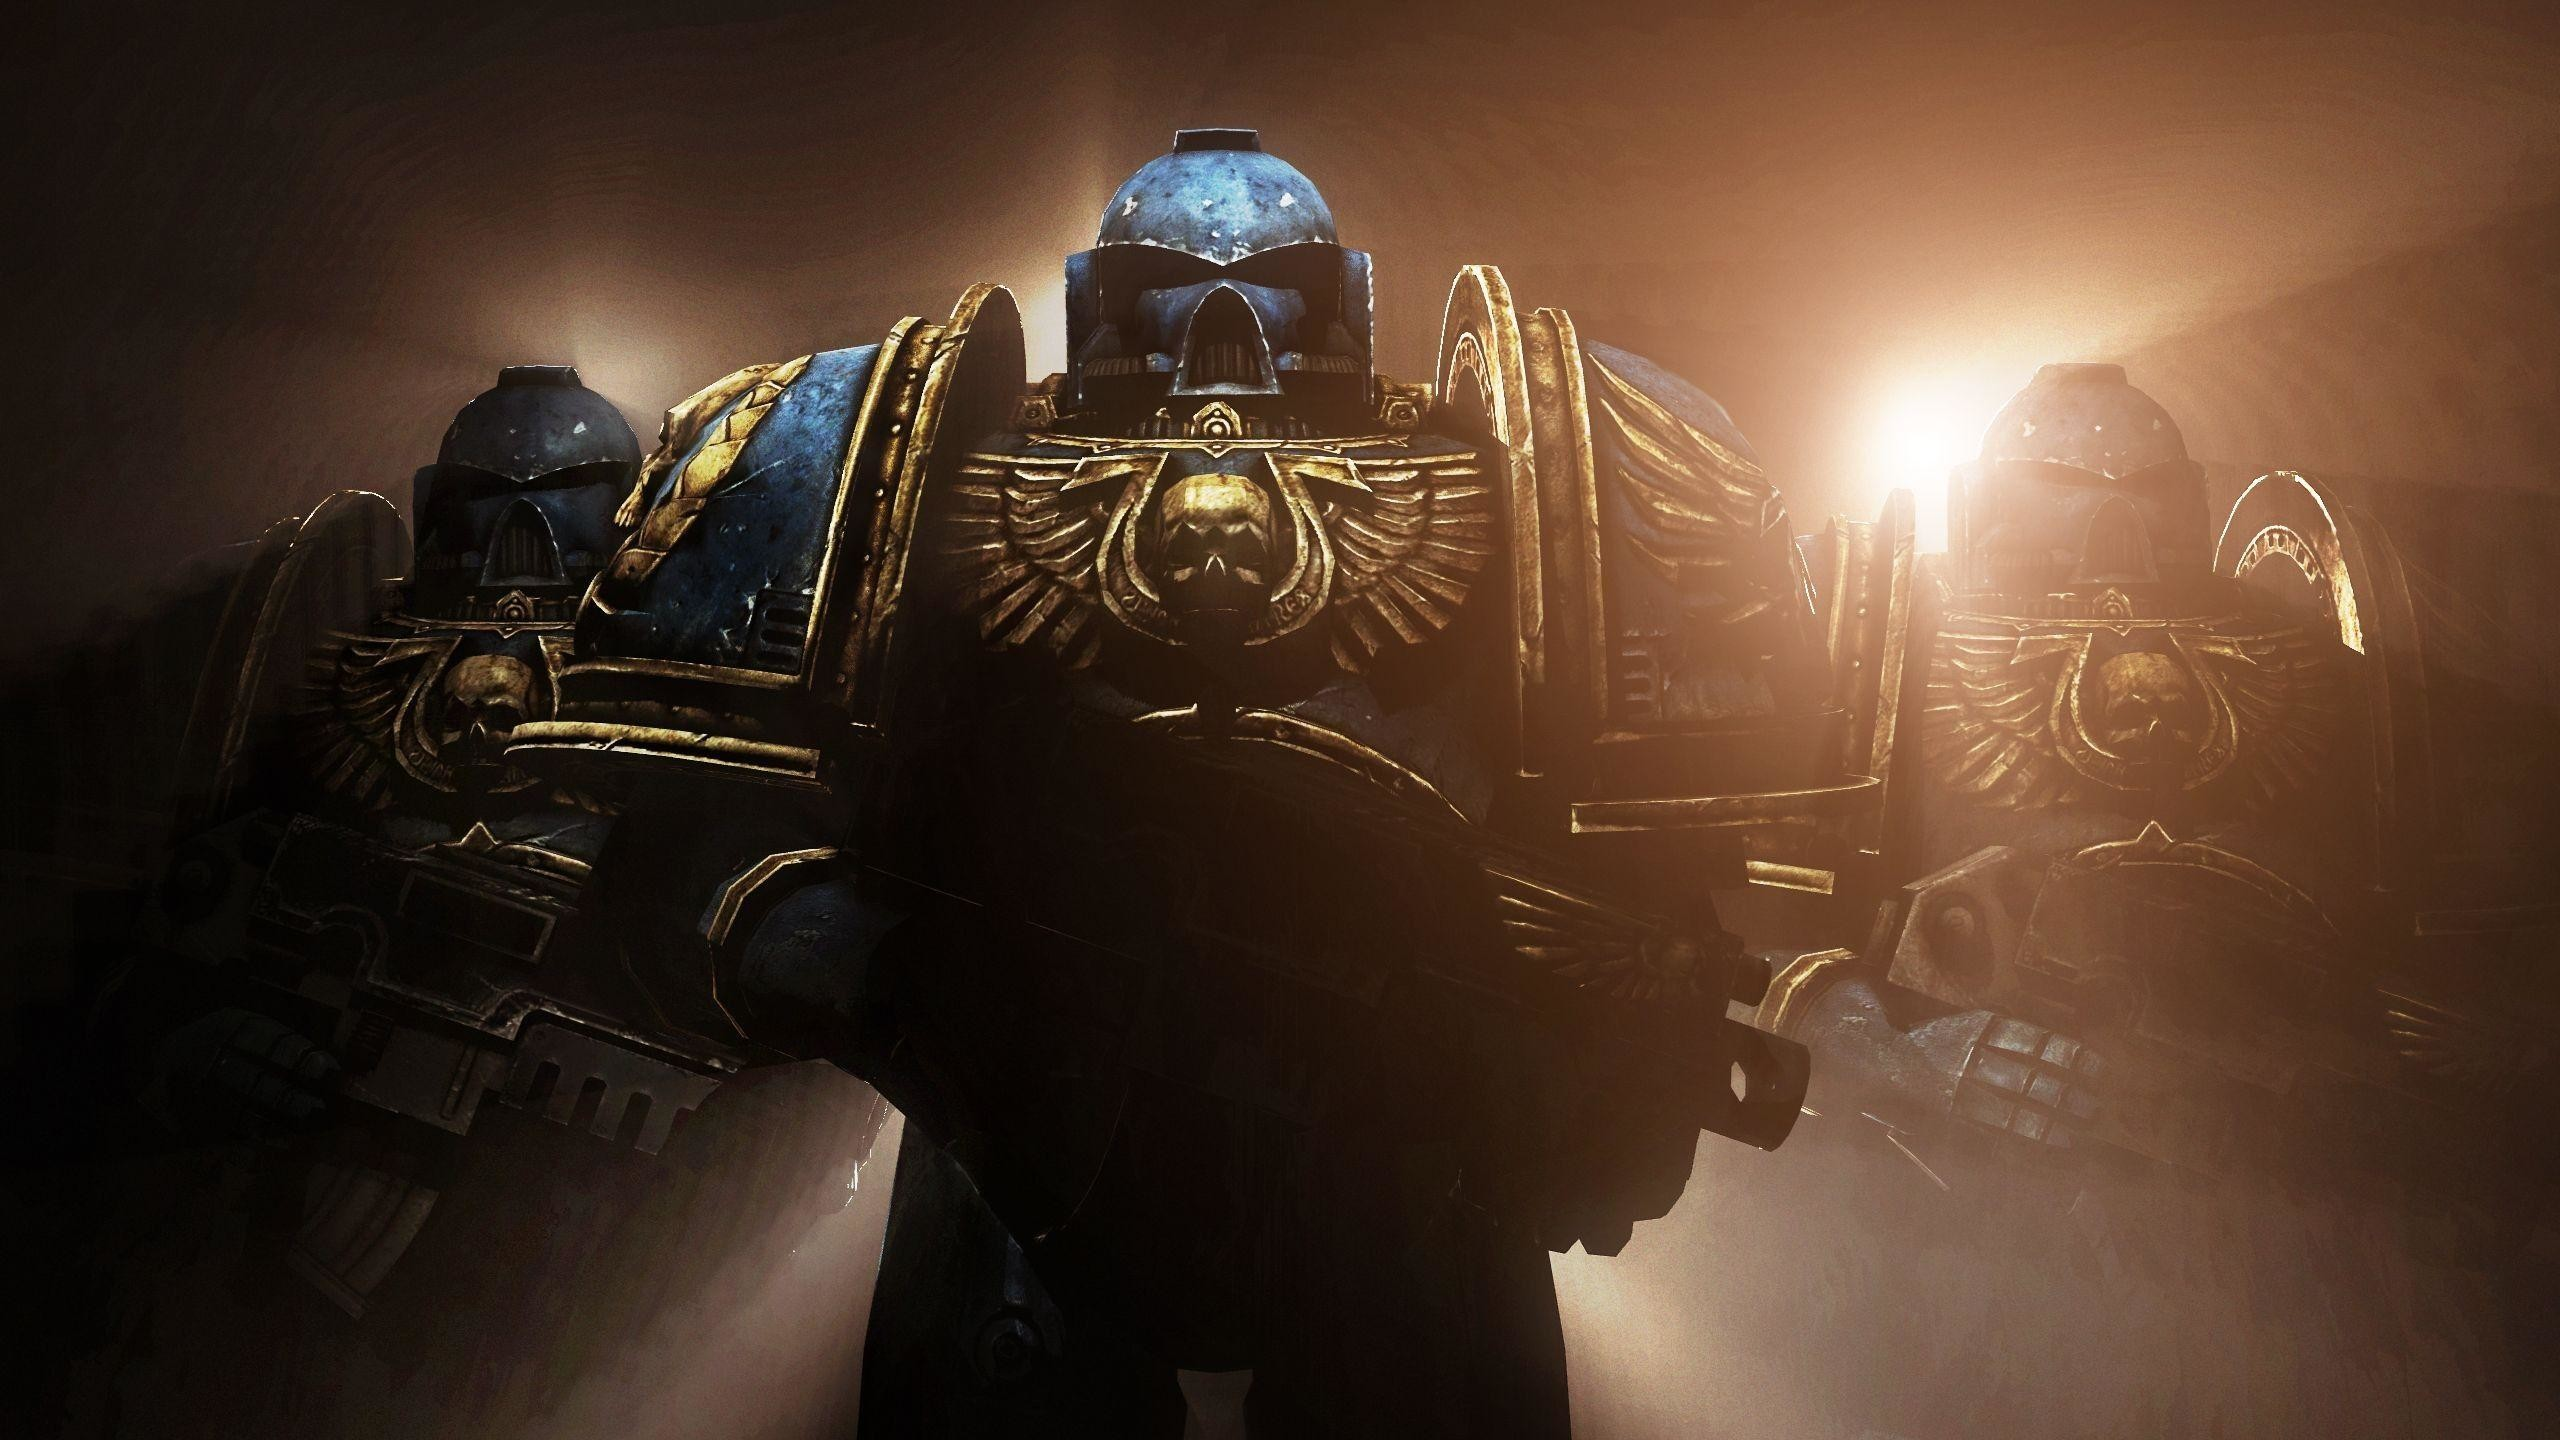 Space Marine HD Wallpaper   Space Marine Images   Cool Wallpapers